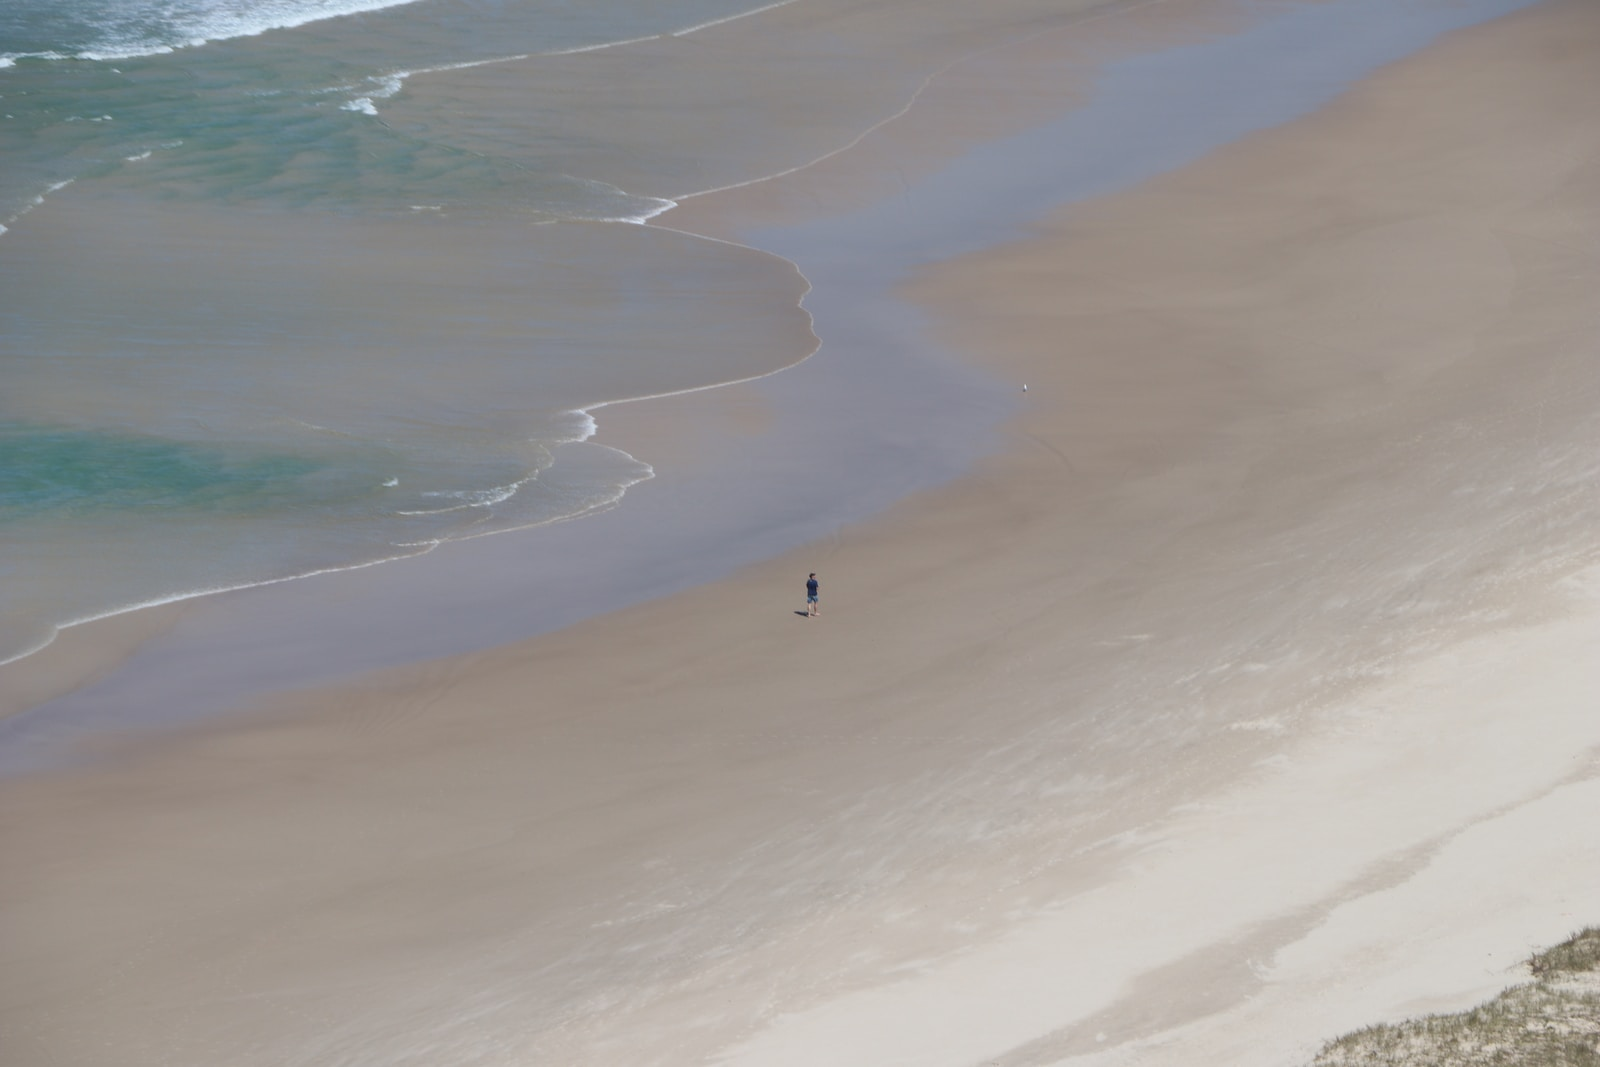 person in white shirt walking on beach during daytime